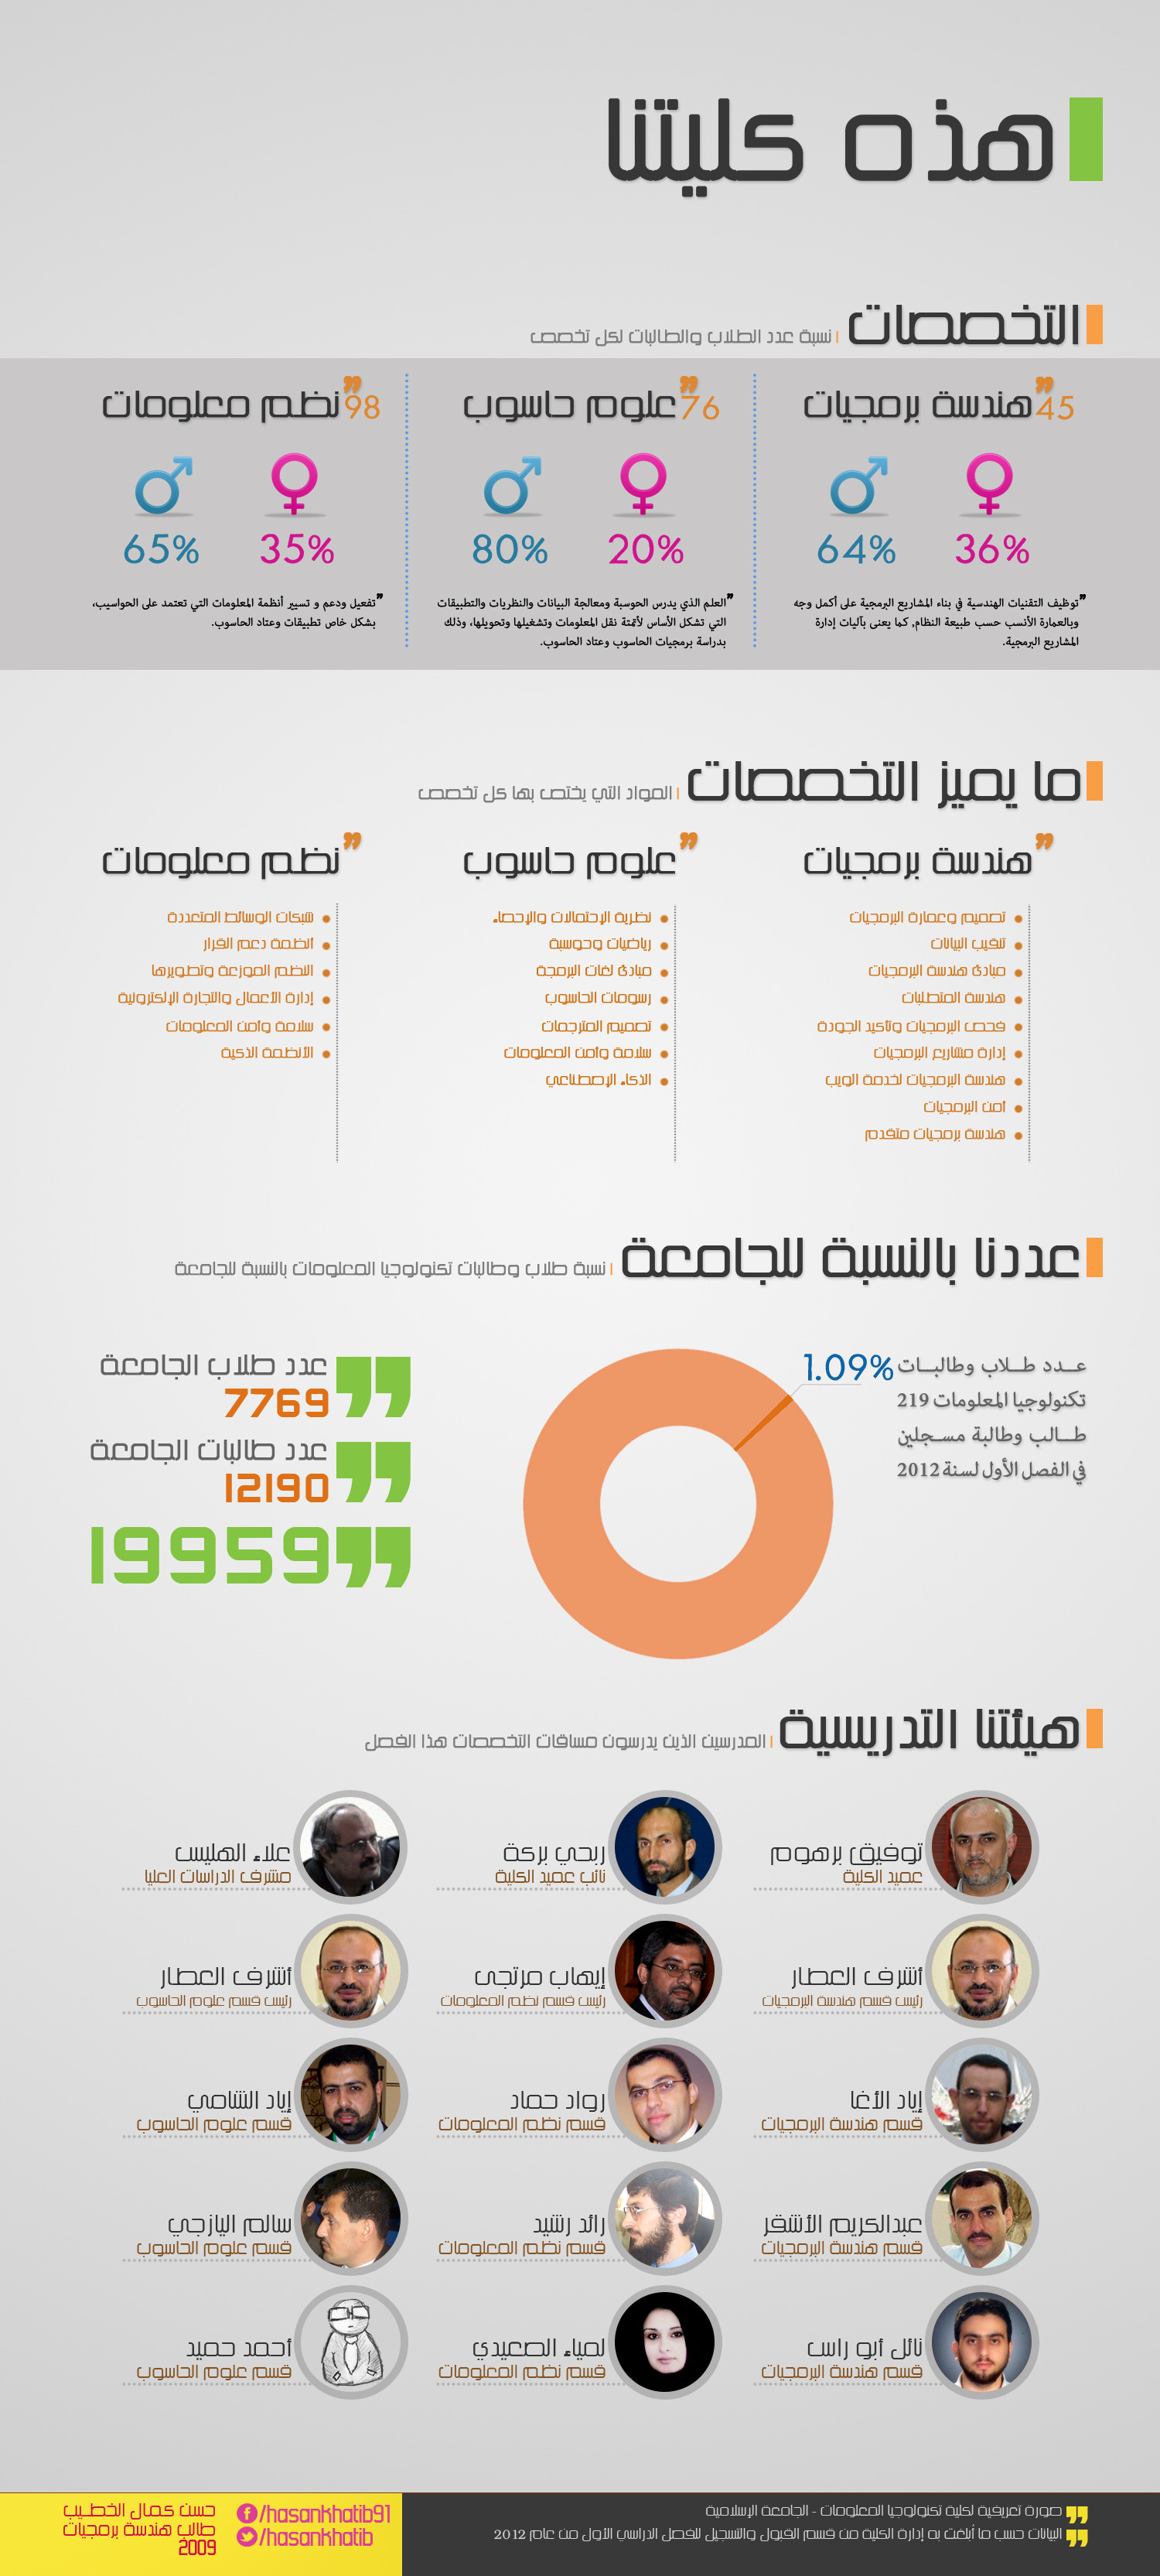 IT college structure in IUG Infographic